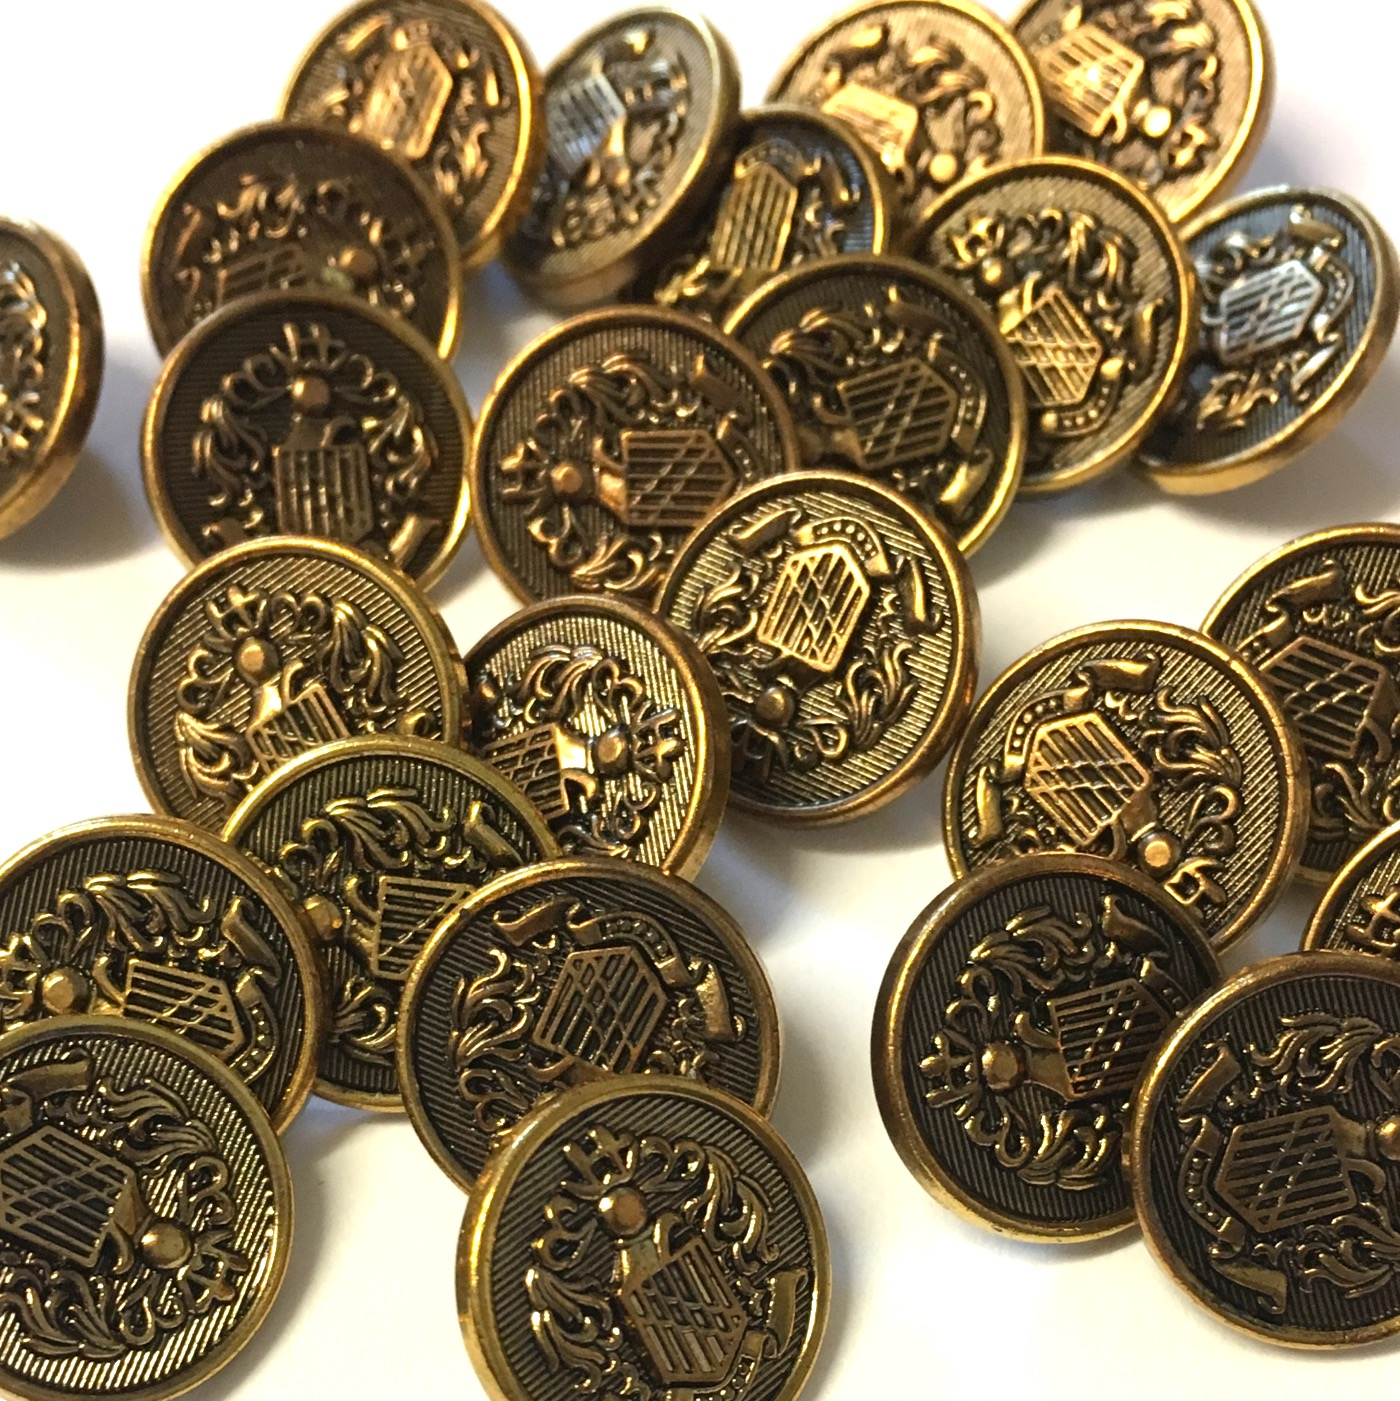 15mm bronze metallic coat of arms buttons, 10 pack - The Button Shed